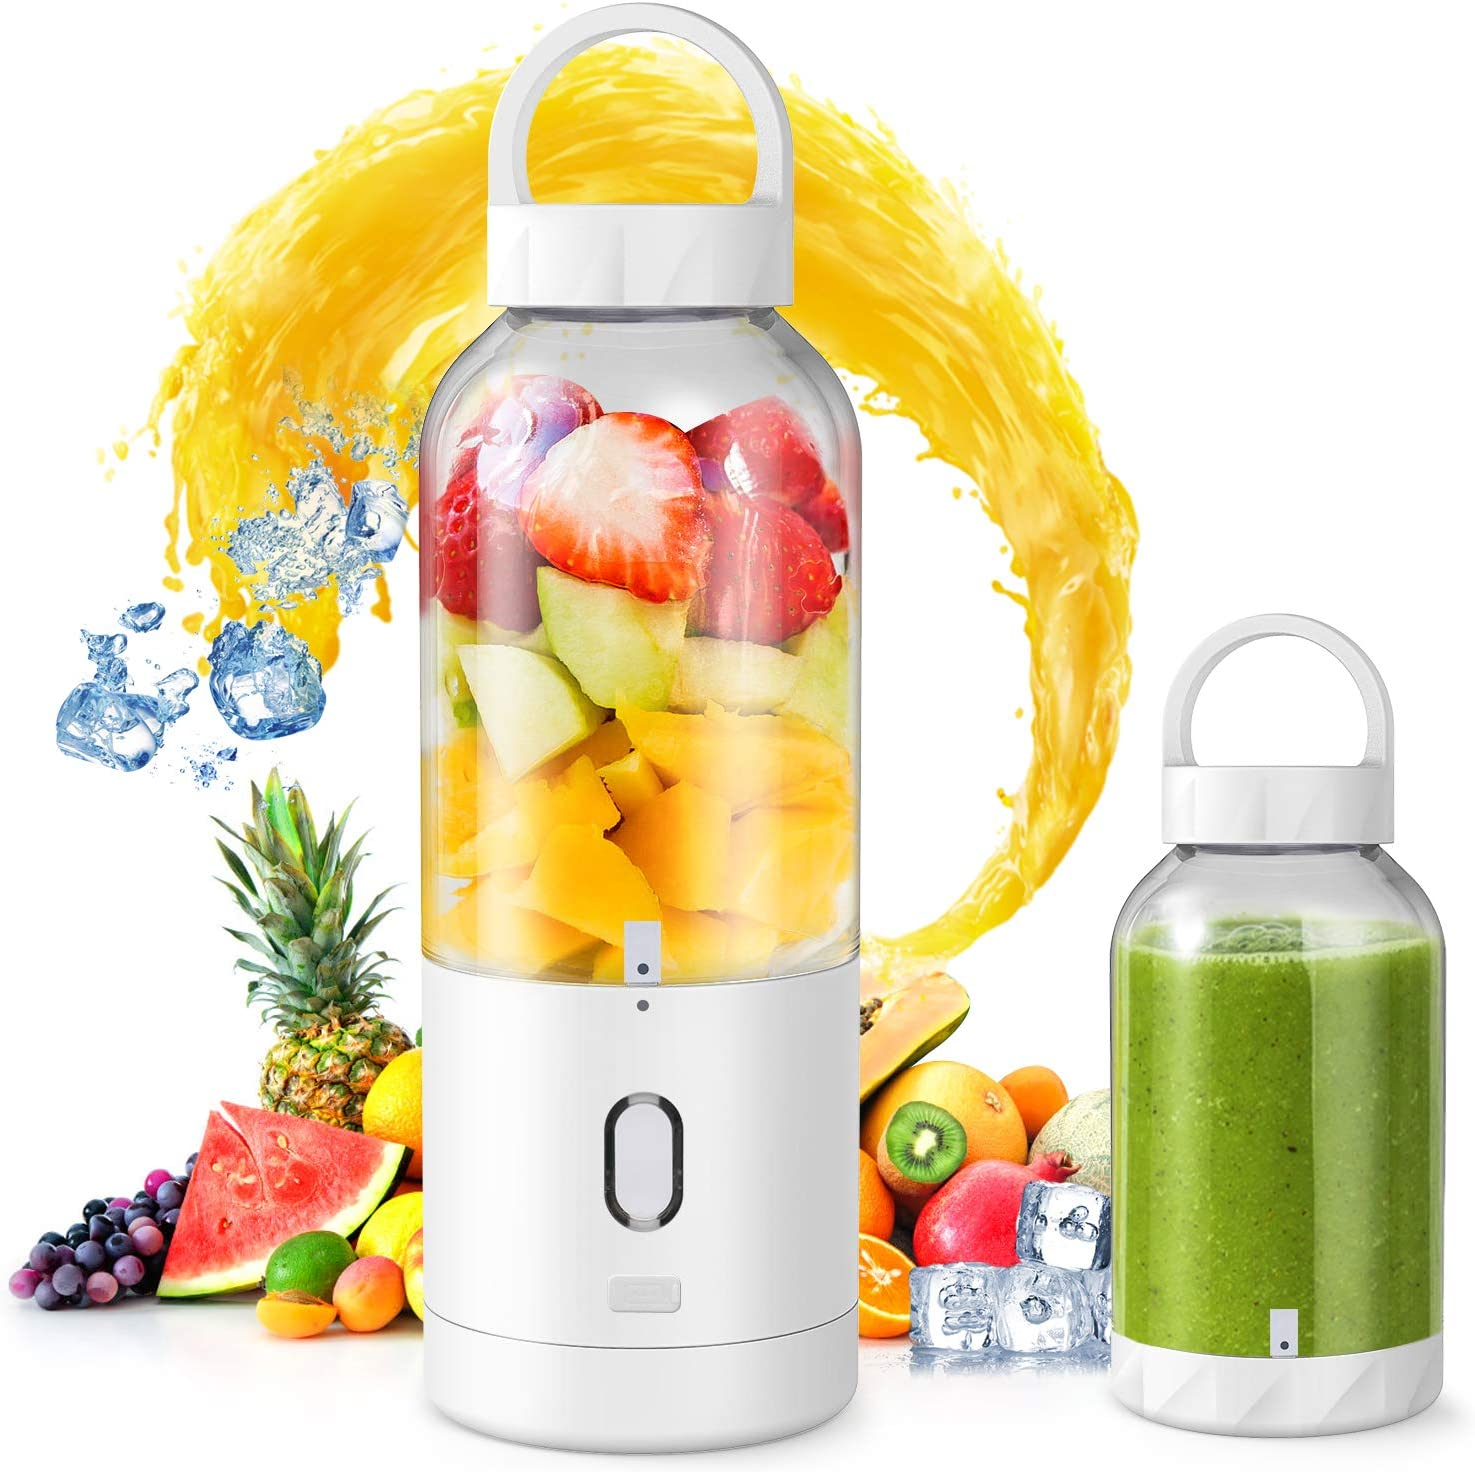 Portable Blender, 165W Personal Blender Shakes and Smoothies, USB Rechargeable Mini Ice Crusher with Six Blades Blender for Home, Office, Sports, Travel